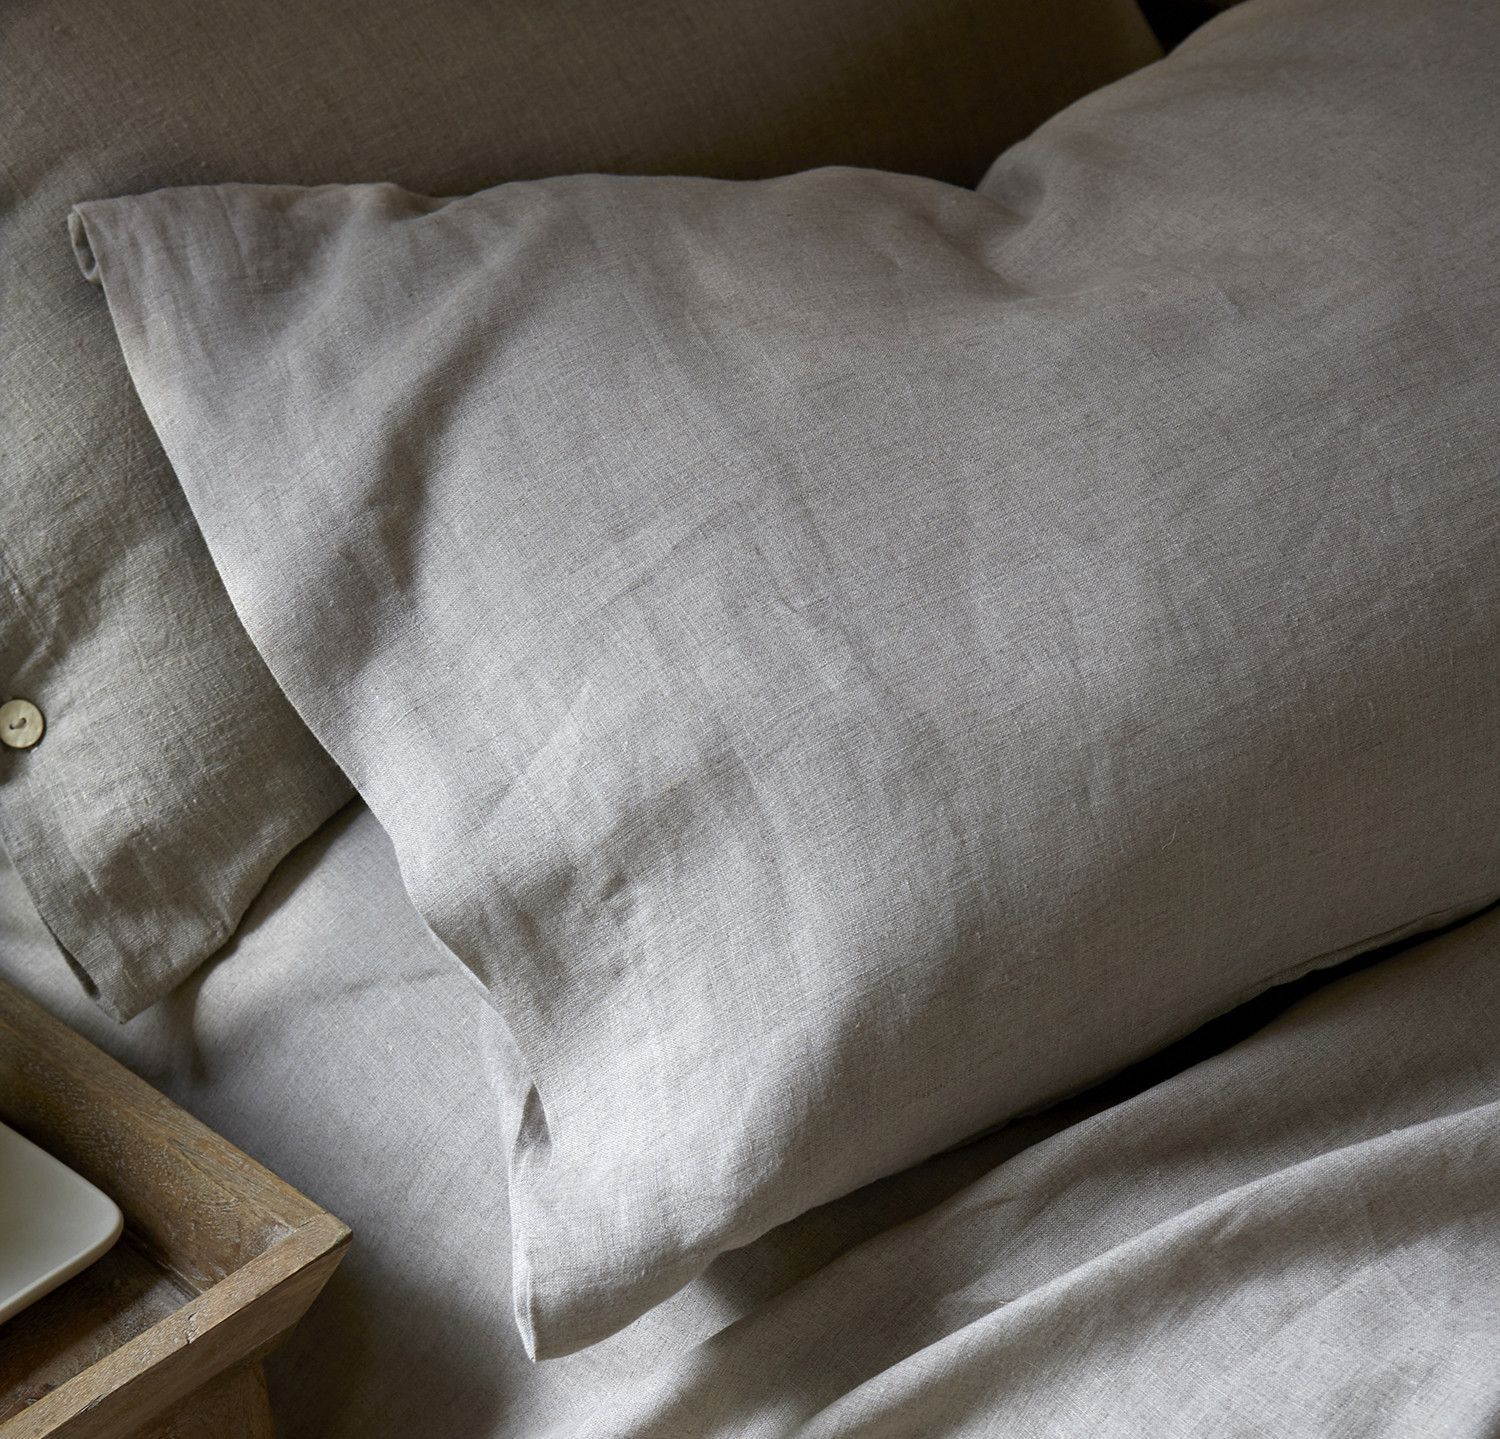 Also available with a flange (oxford style). Pillow slips cover the pillow you sleep on, so fine weave and smoothness are important. Simple pillow slips are plain, with a European-style deep tuck to h